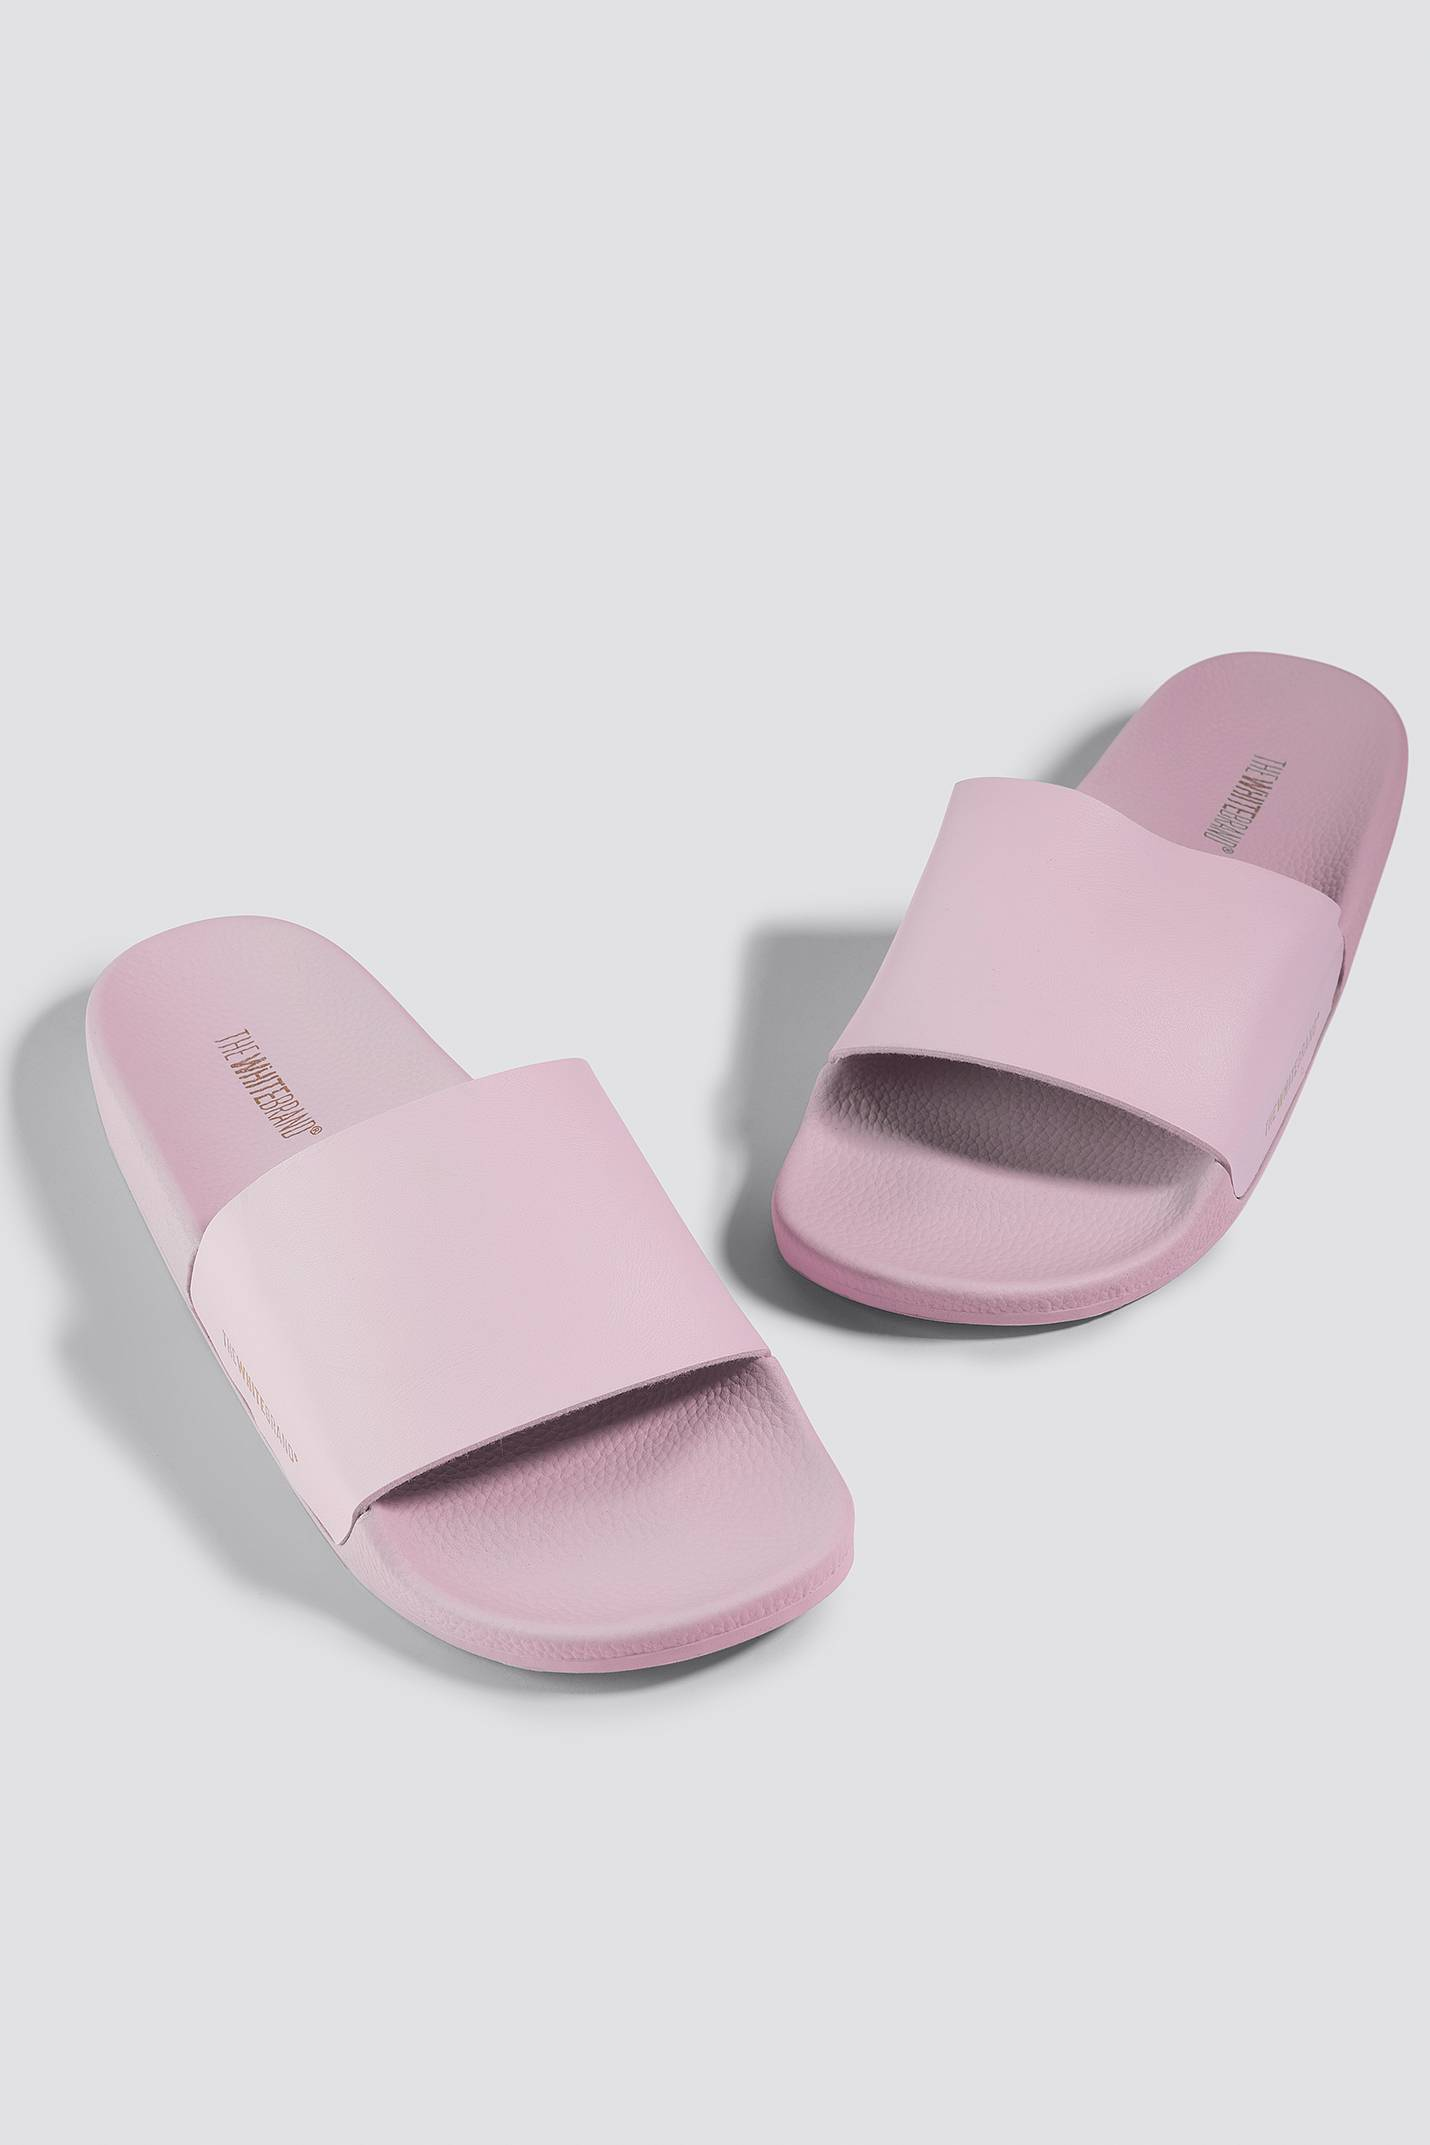 The White Brand Minimal Slippers - Pink